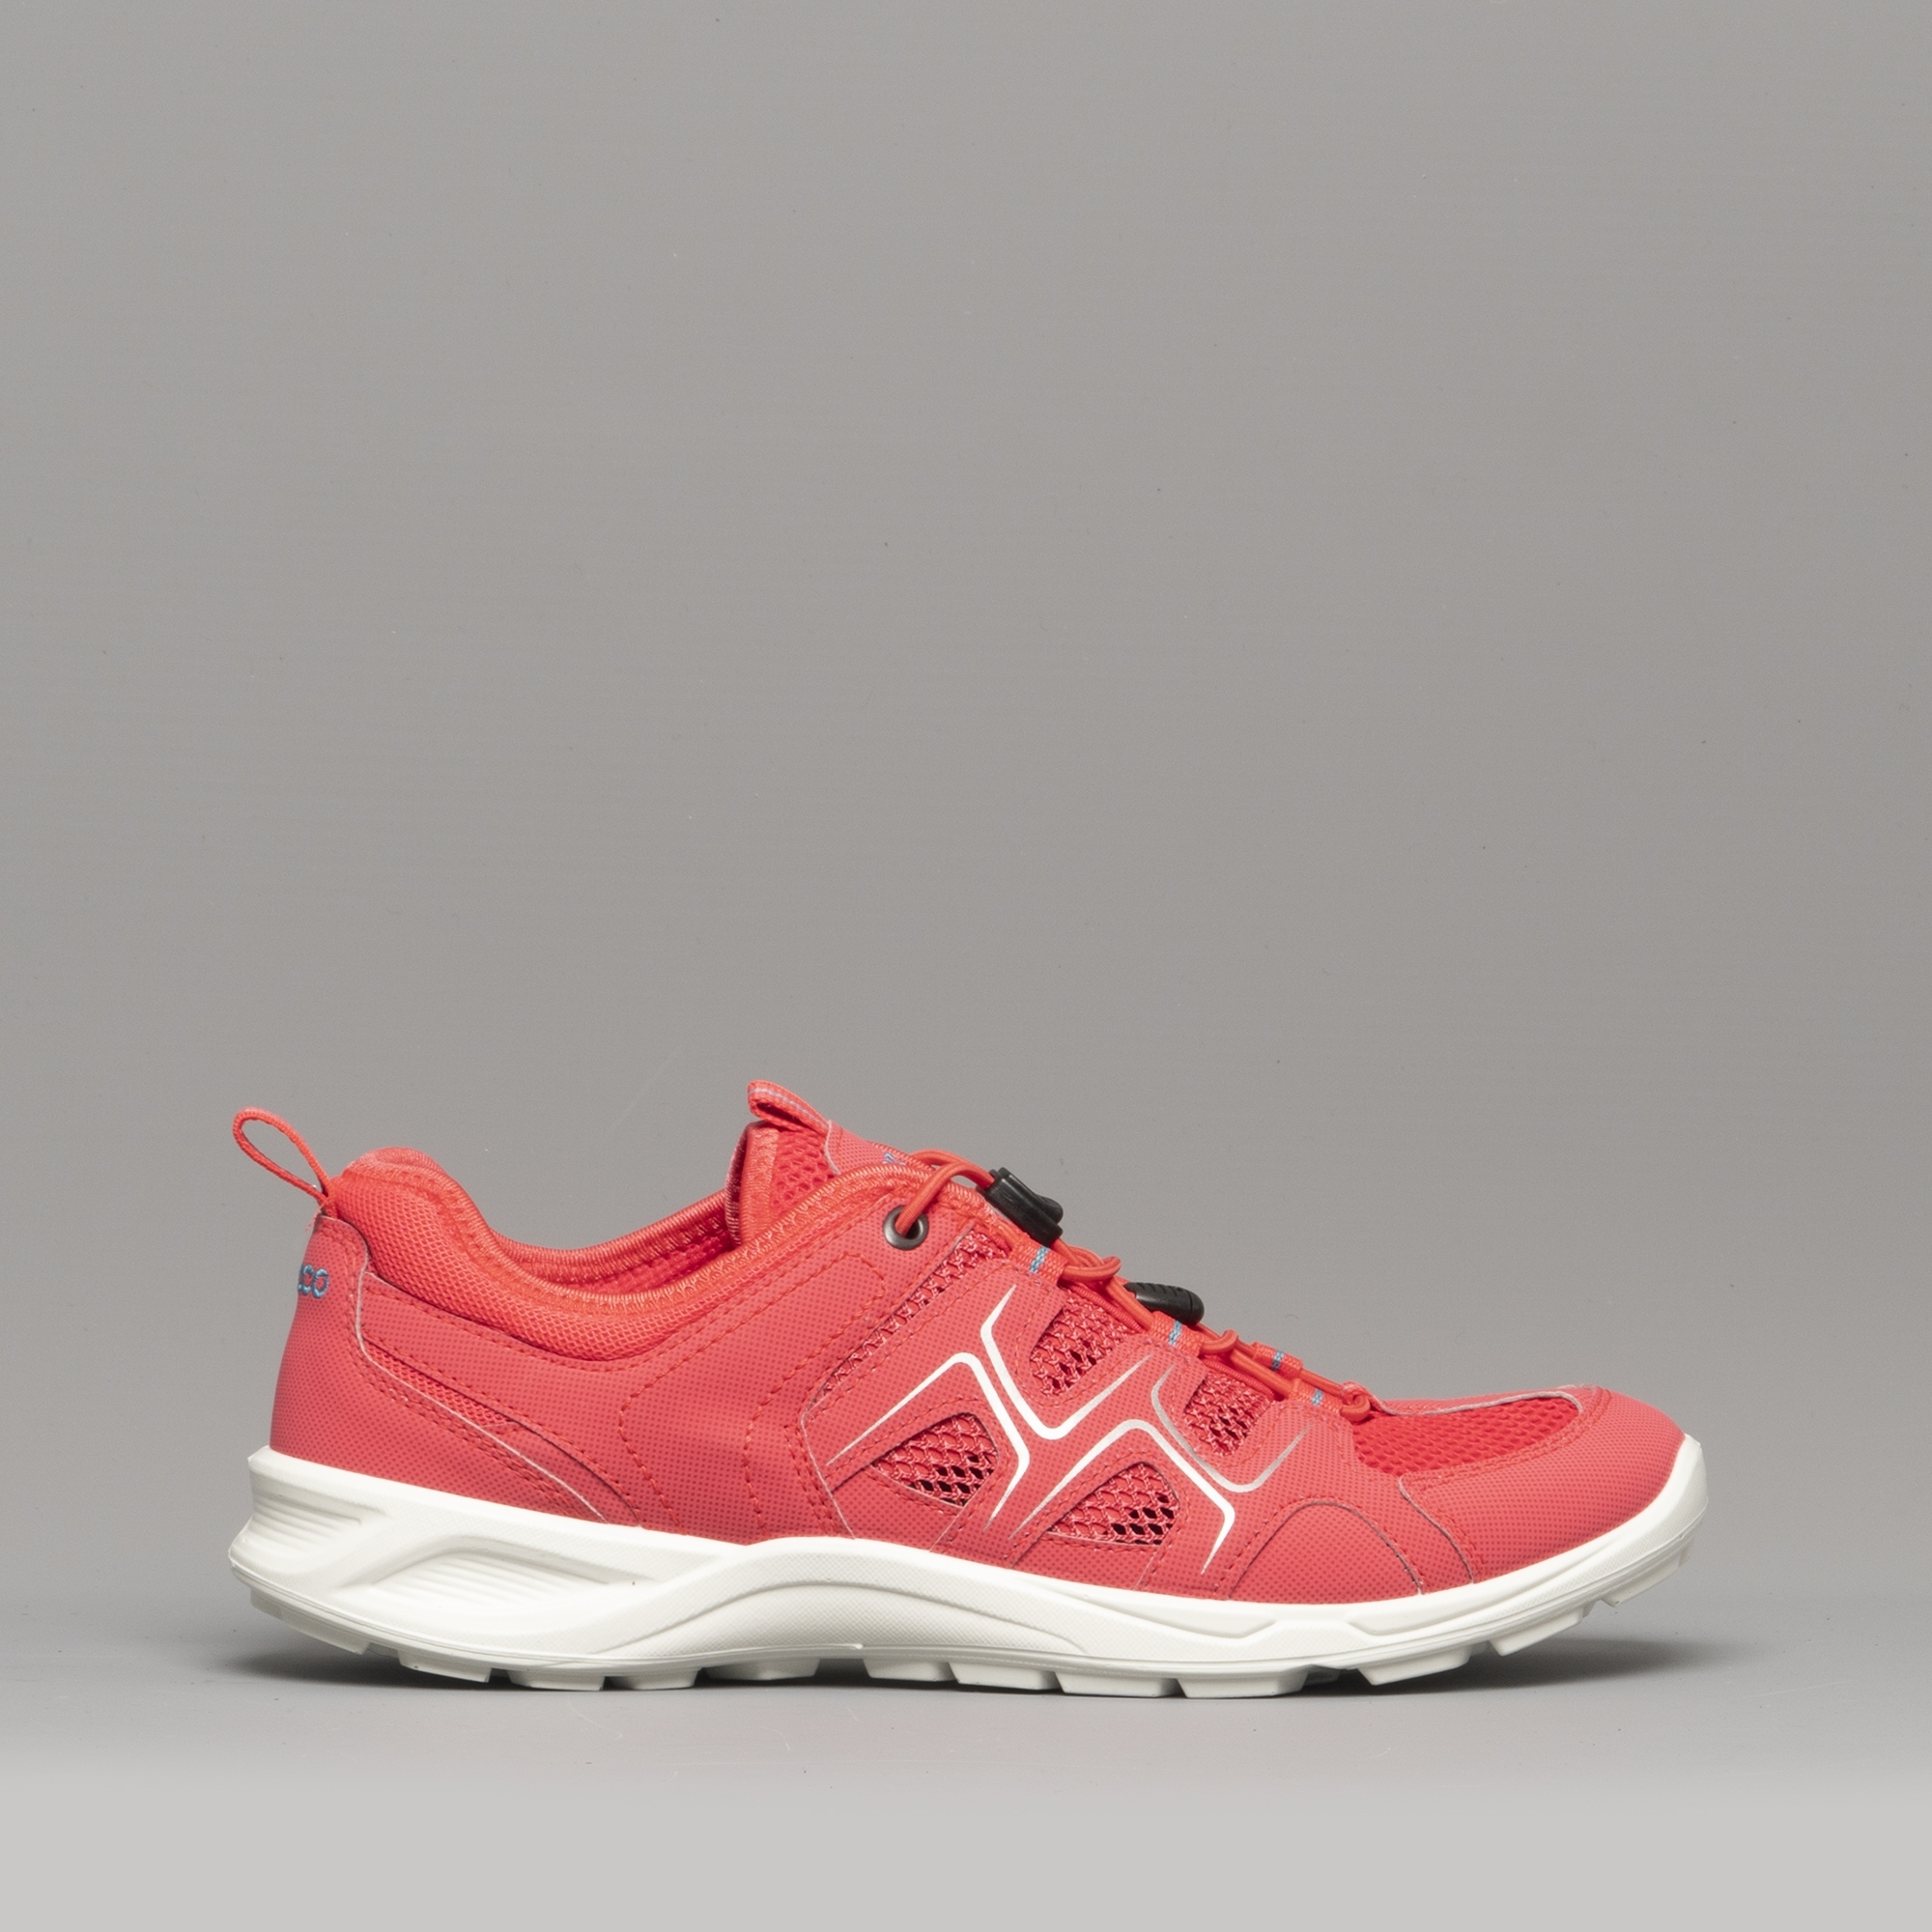 ECCO TERRACRUISE LT Ladies Mesh Outdoor Shoes Teaberry